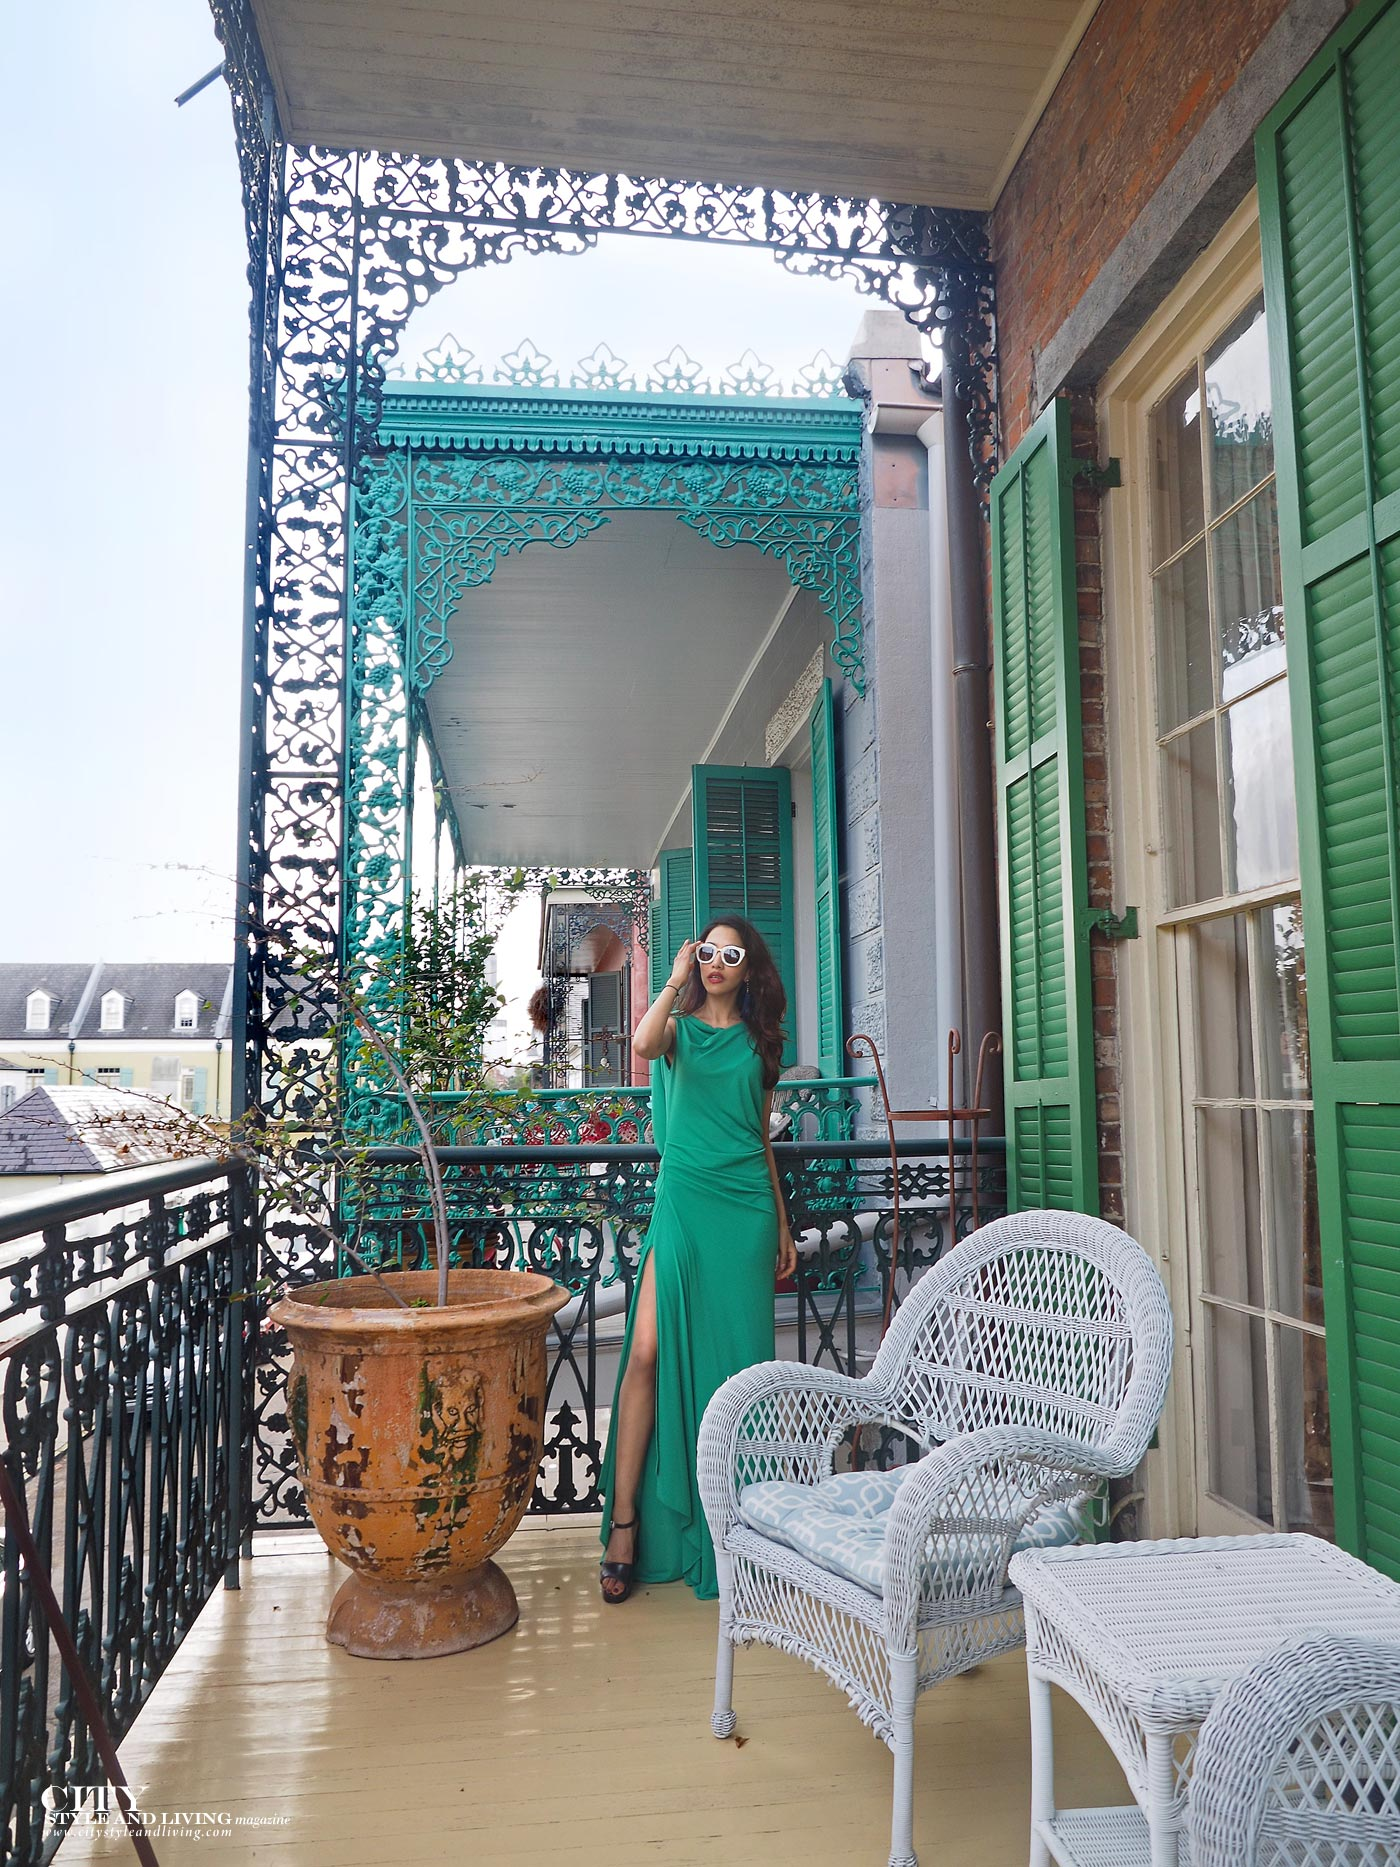 City style and living magazine The Editors Notebook style fashion blogger Shivana Maharaj French Quarter New Orleans Soniat House Balcony wearing BCBG Max Azria green maxi dress